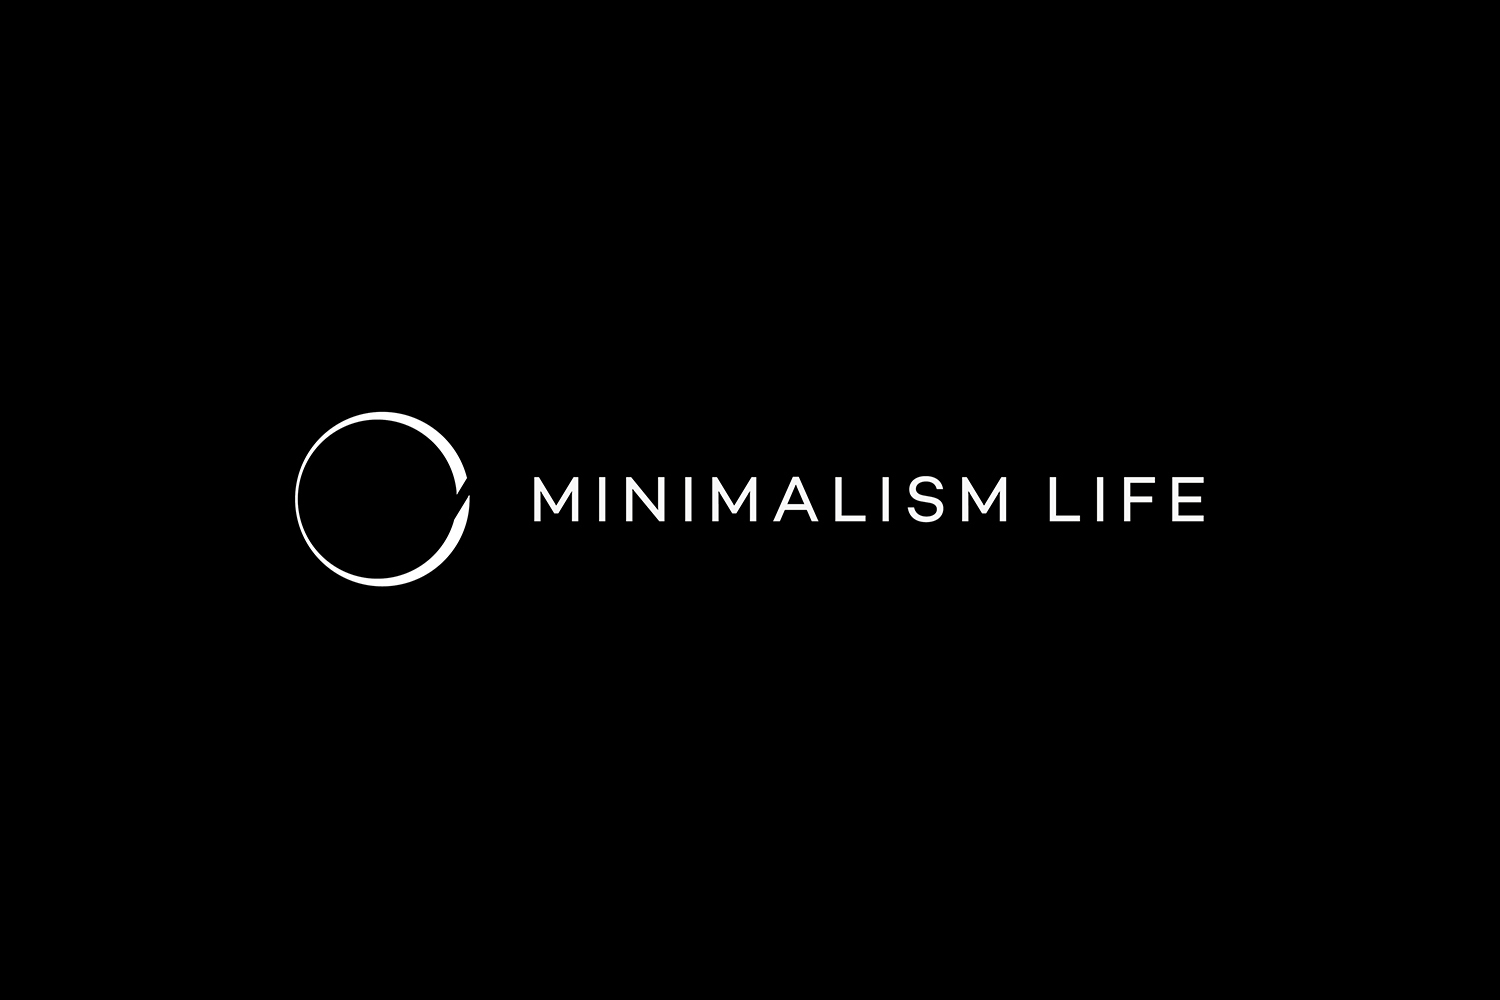 Wall Tv Design Minimalism Life The Minimalists